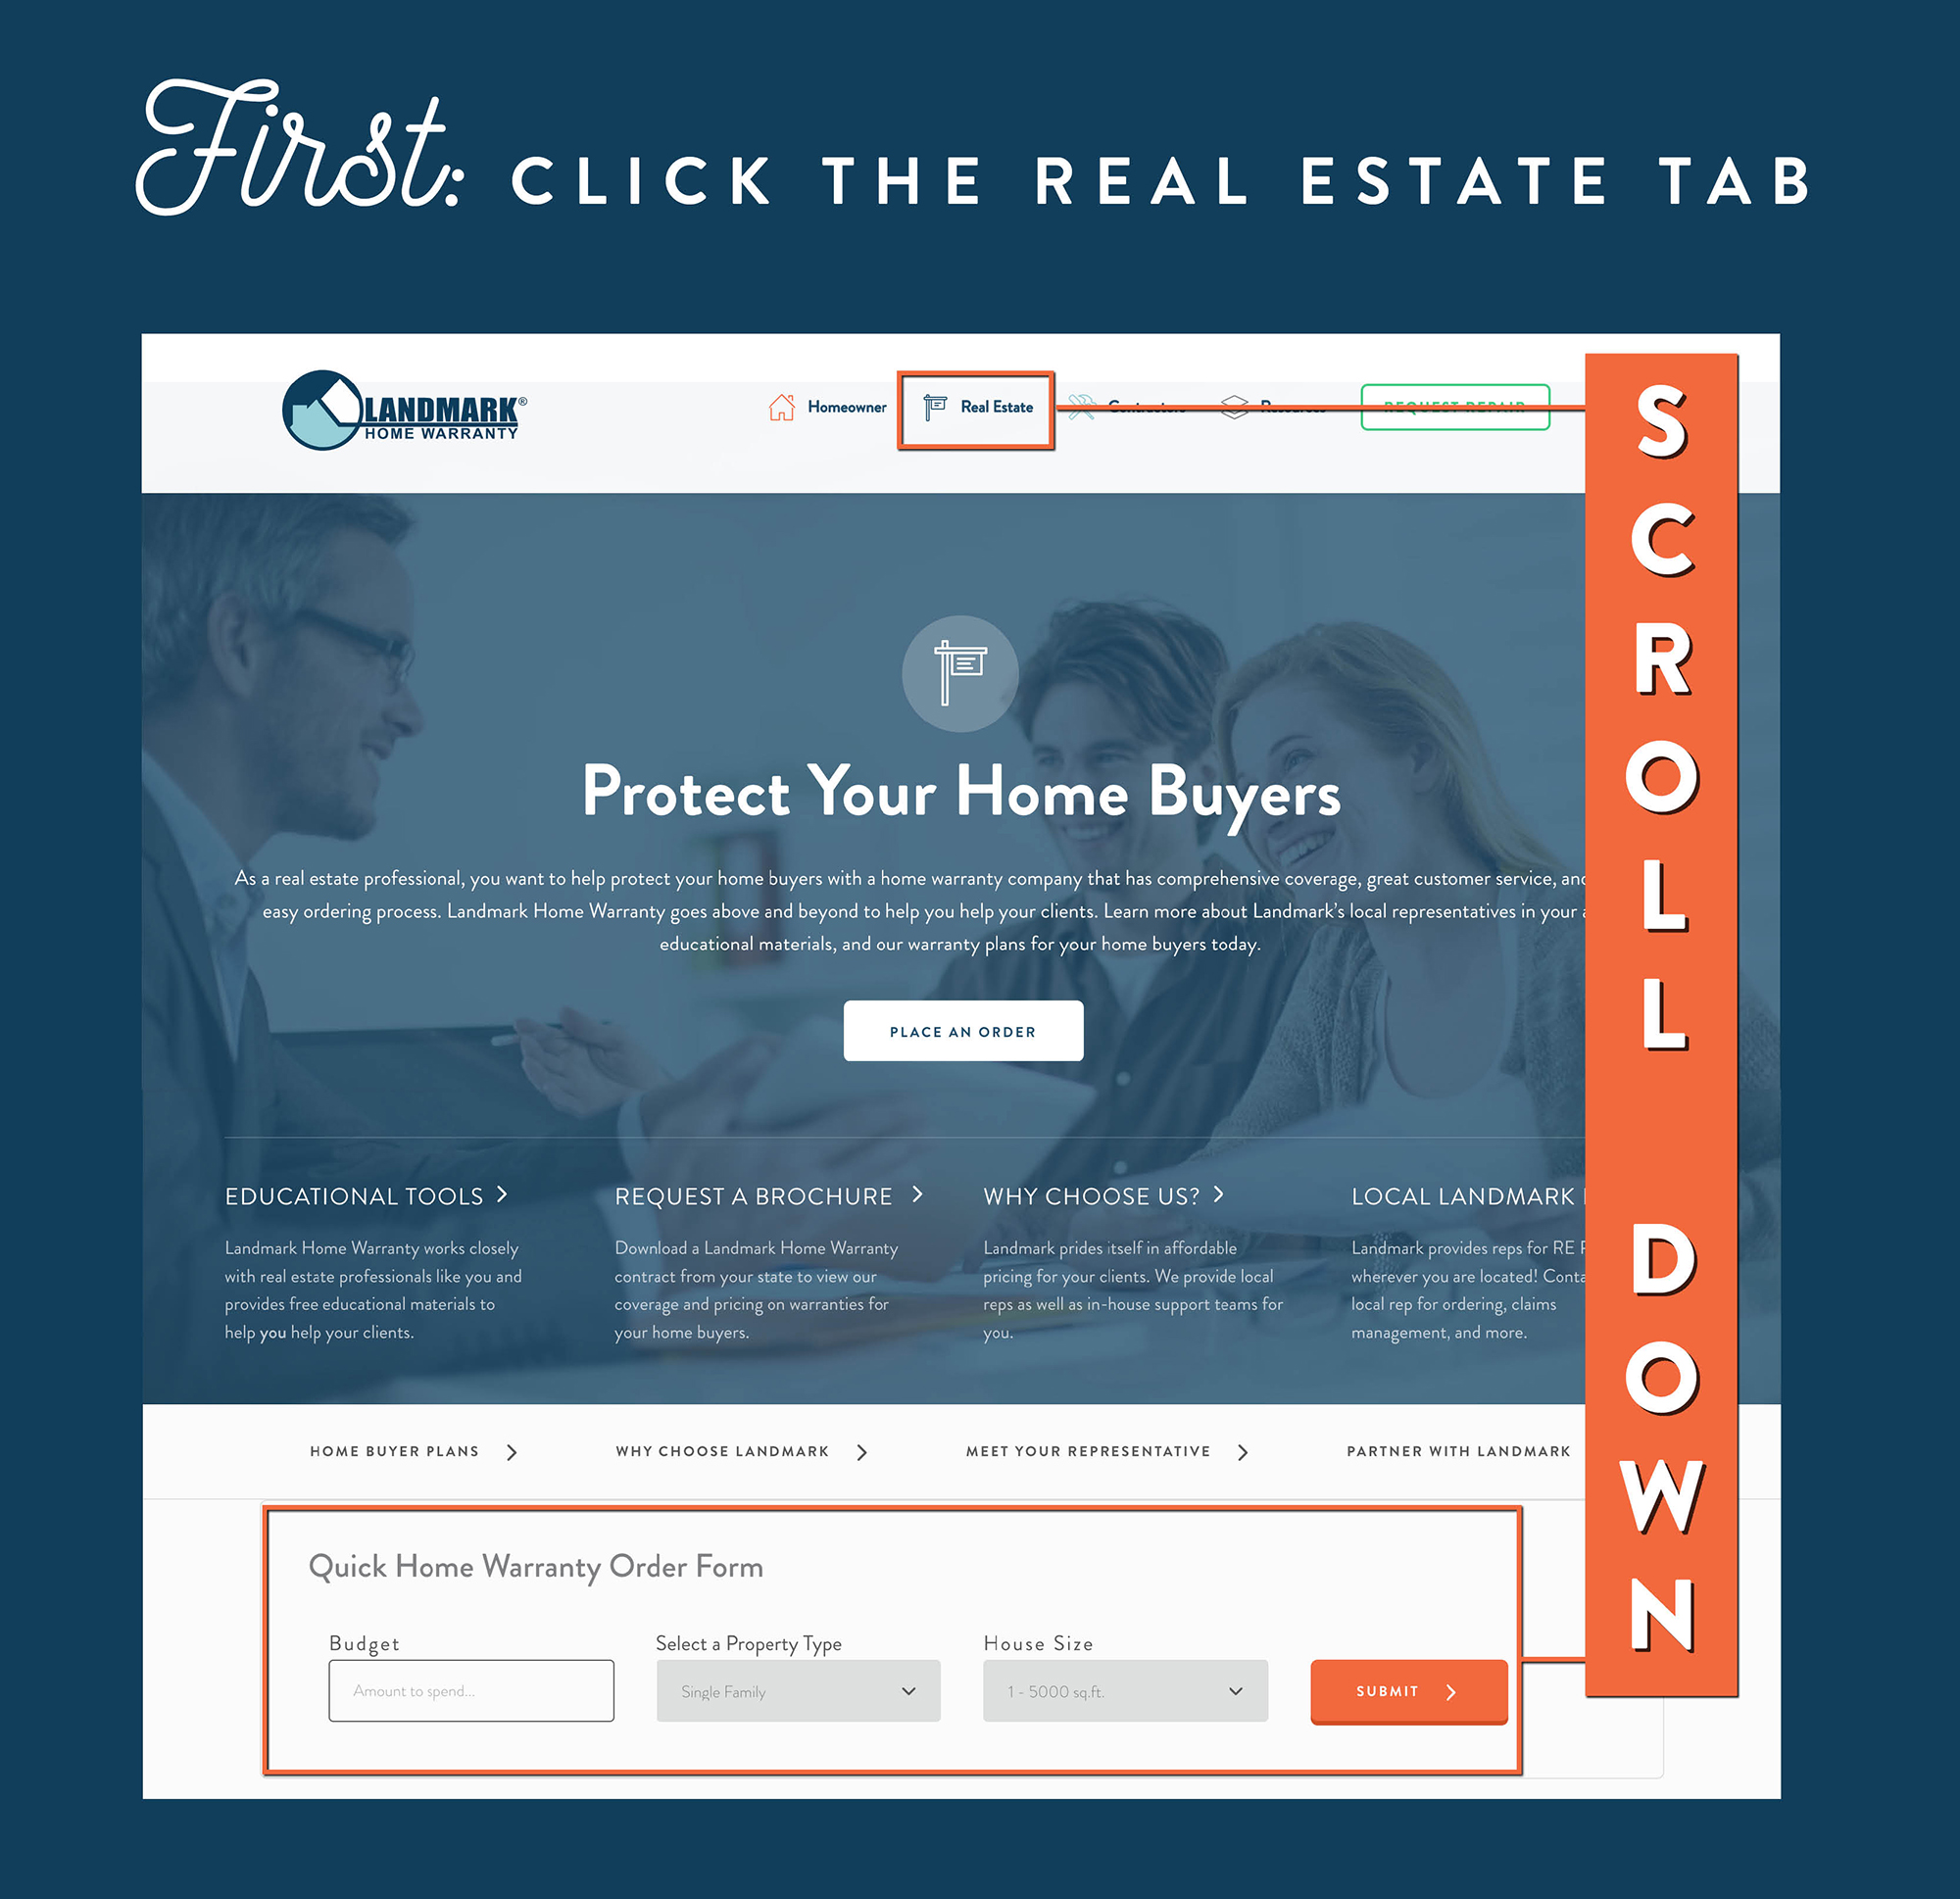 Find the quick order tool by scrolling down the real estate page.